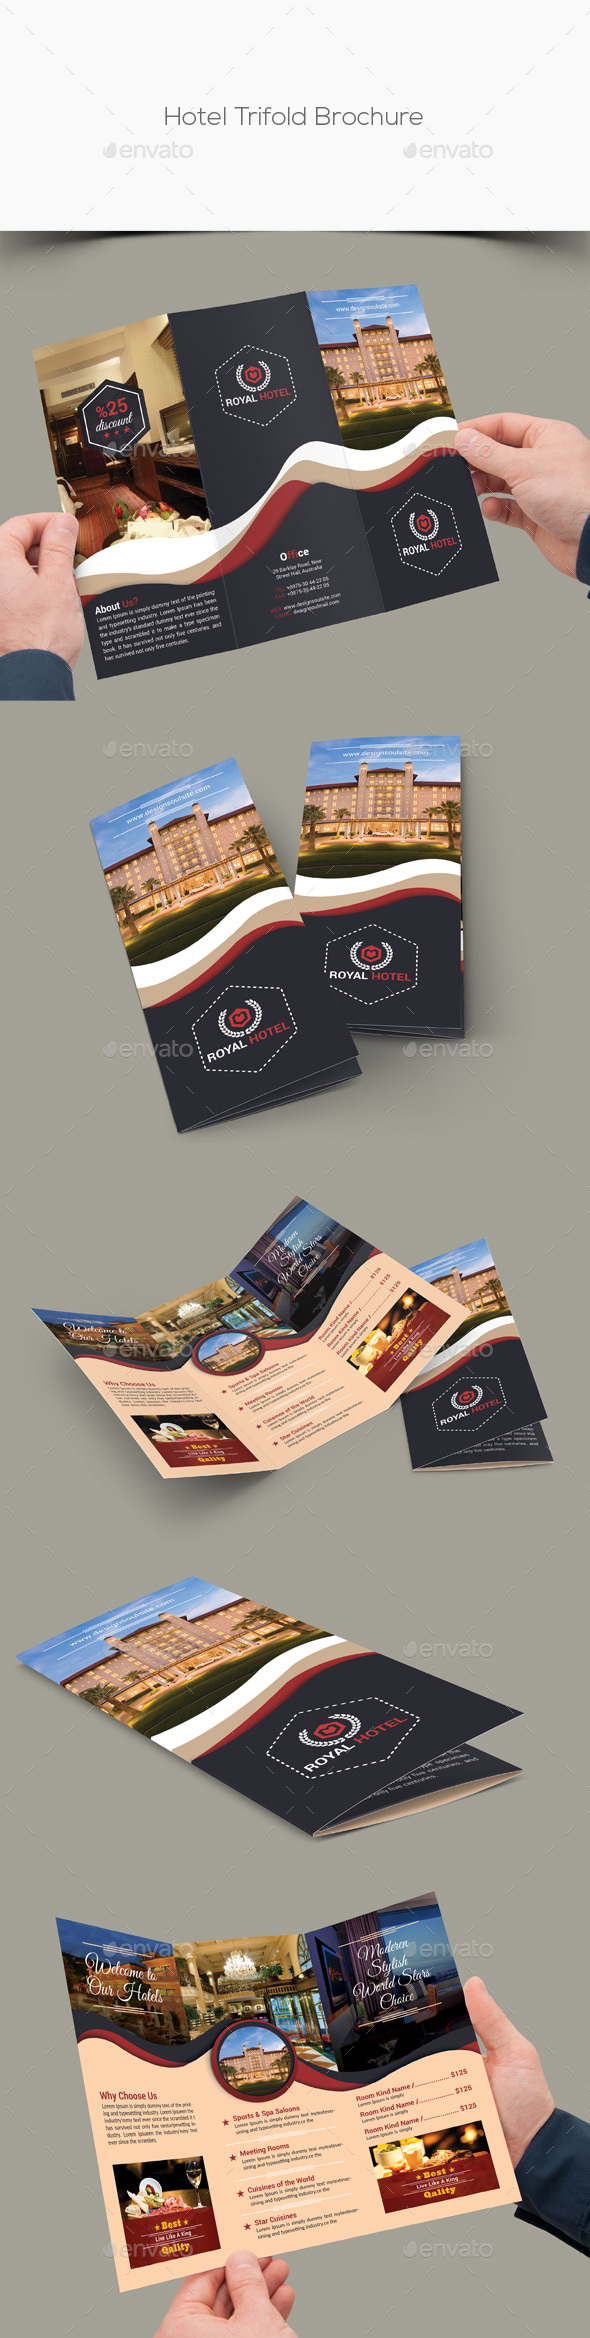 Hotel Trifold Brochure - Corporate Brochures